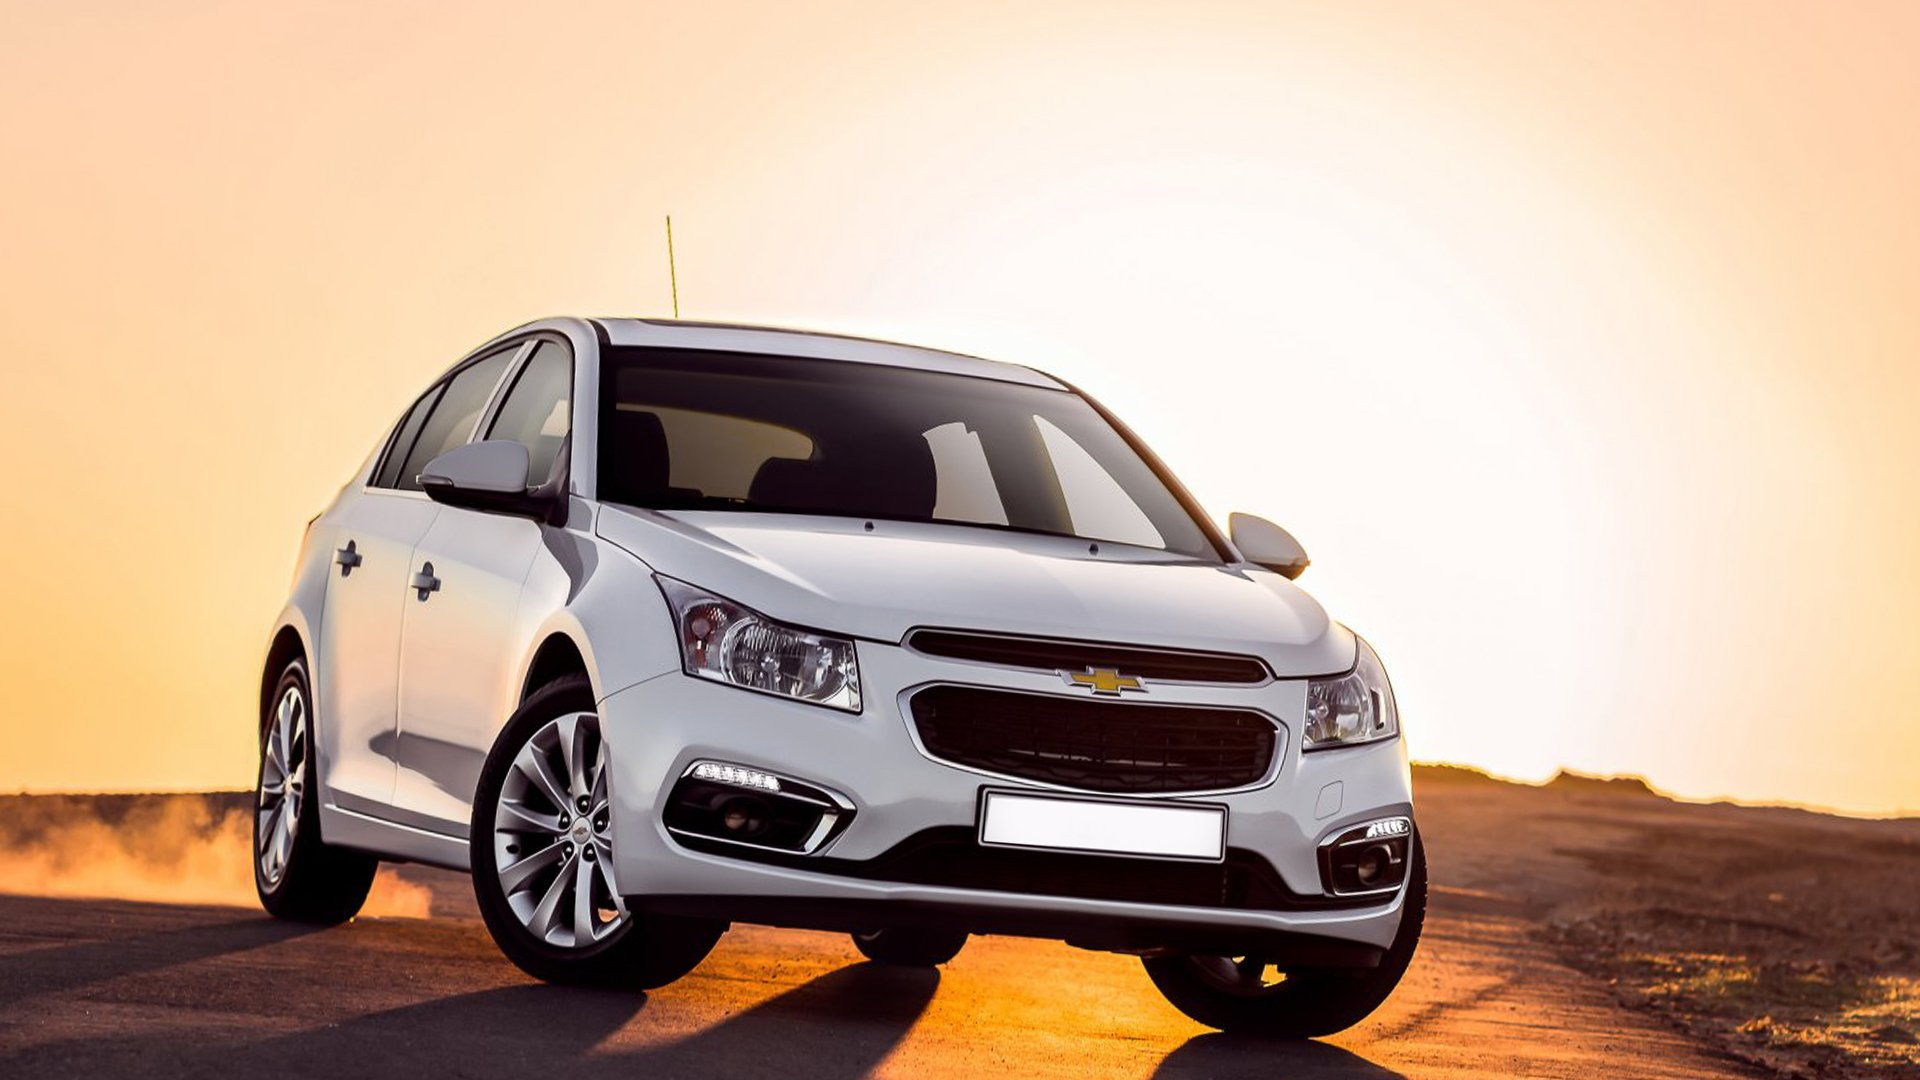 New 2019 Chevrolet Cruze Wallpaper HD Desktop